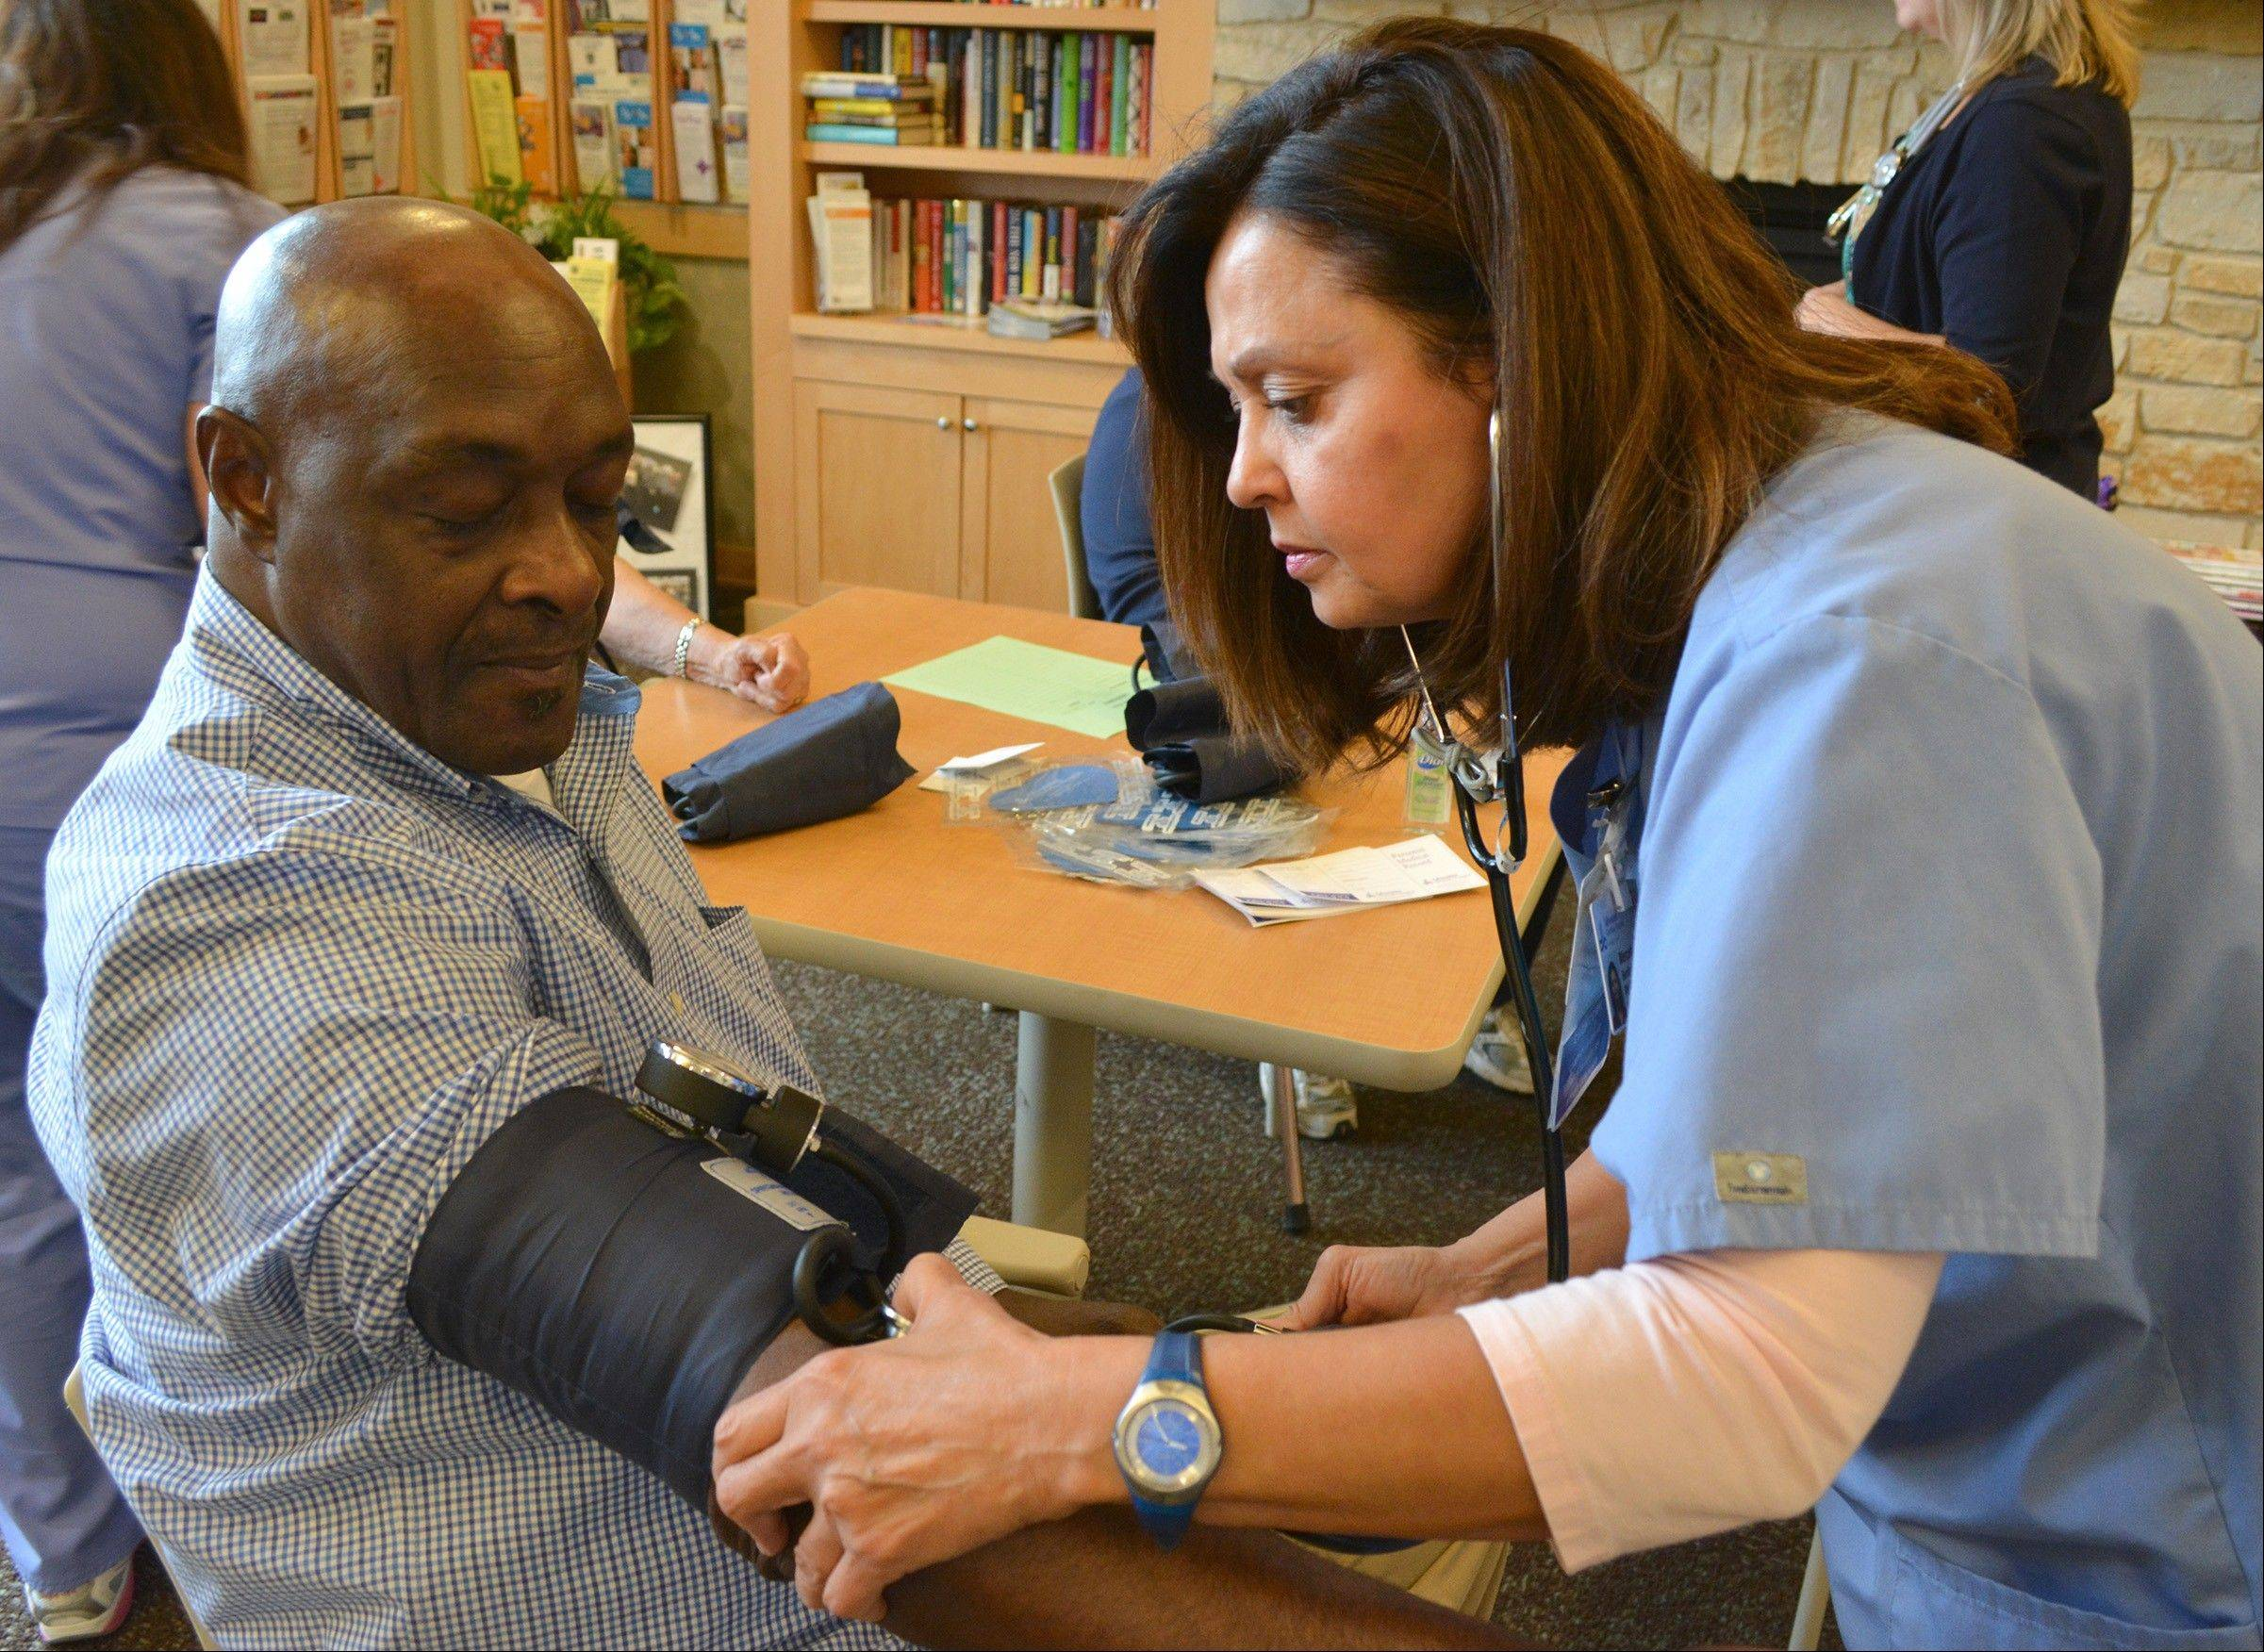 Joseph Lee of Glendale Heights has his blood pressure checked by Adventist GlenOaks Hospital registered nurse Mercedes Bentley. The hospital offers free blood pressure checks monthly at the Glendale Heights Center for Senior Citizens.